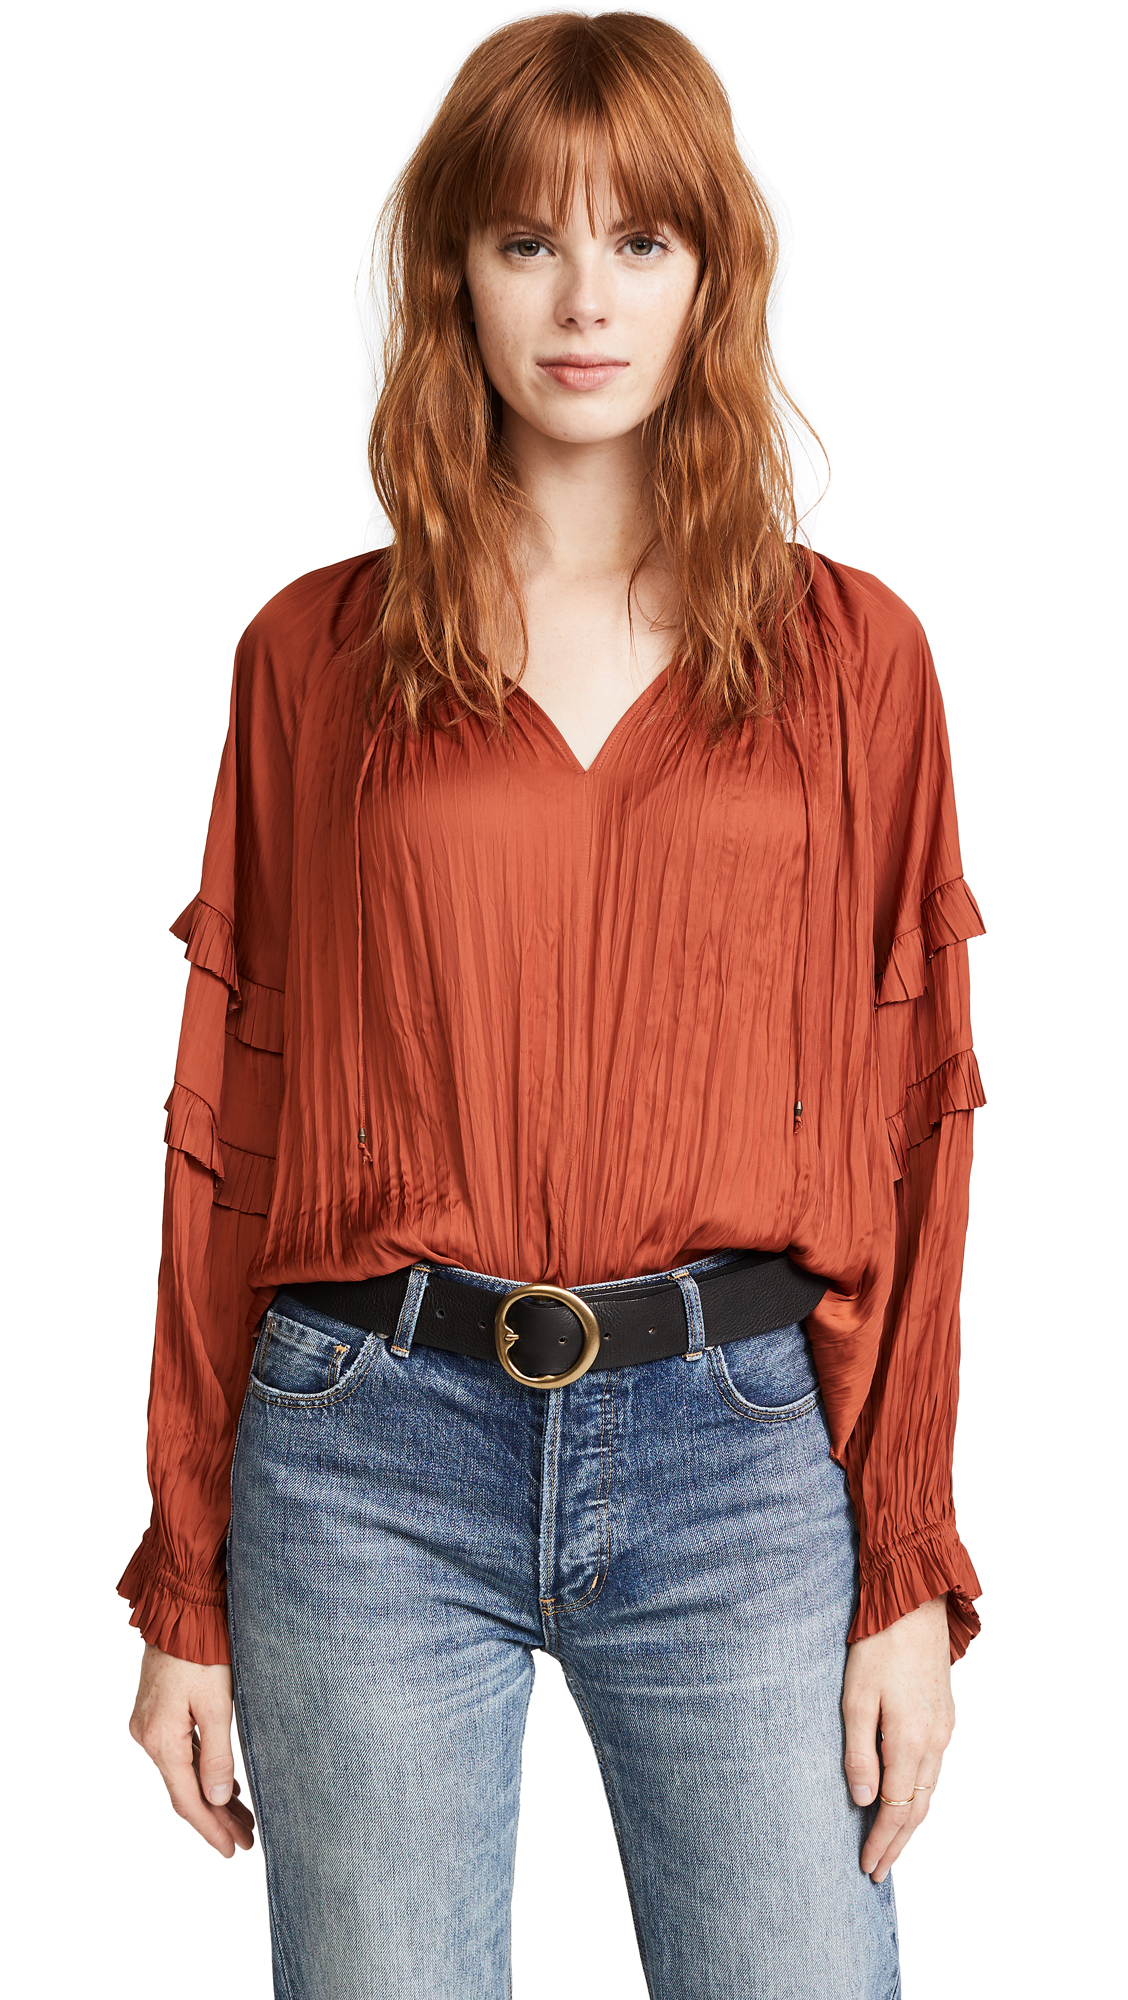 Ulla Johnson Carolina Blouse - Poppy